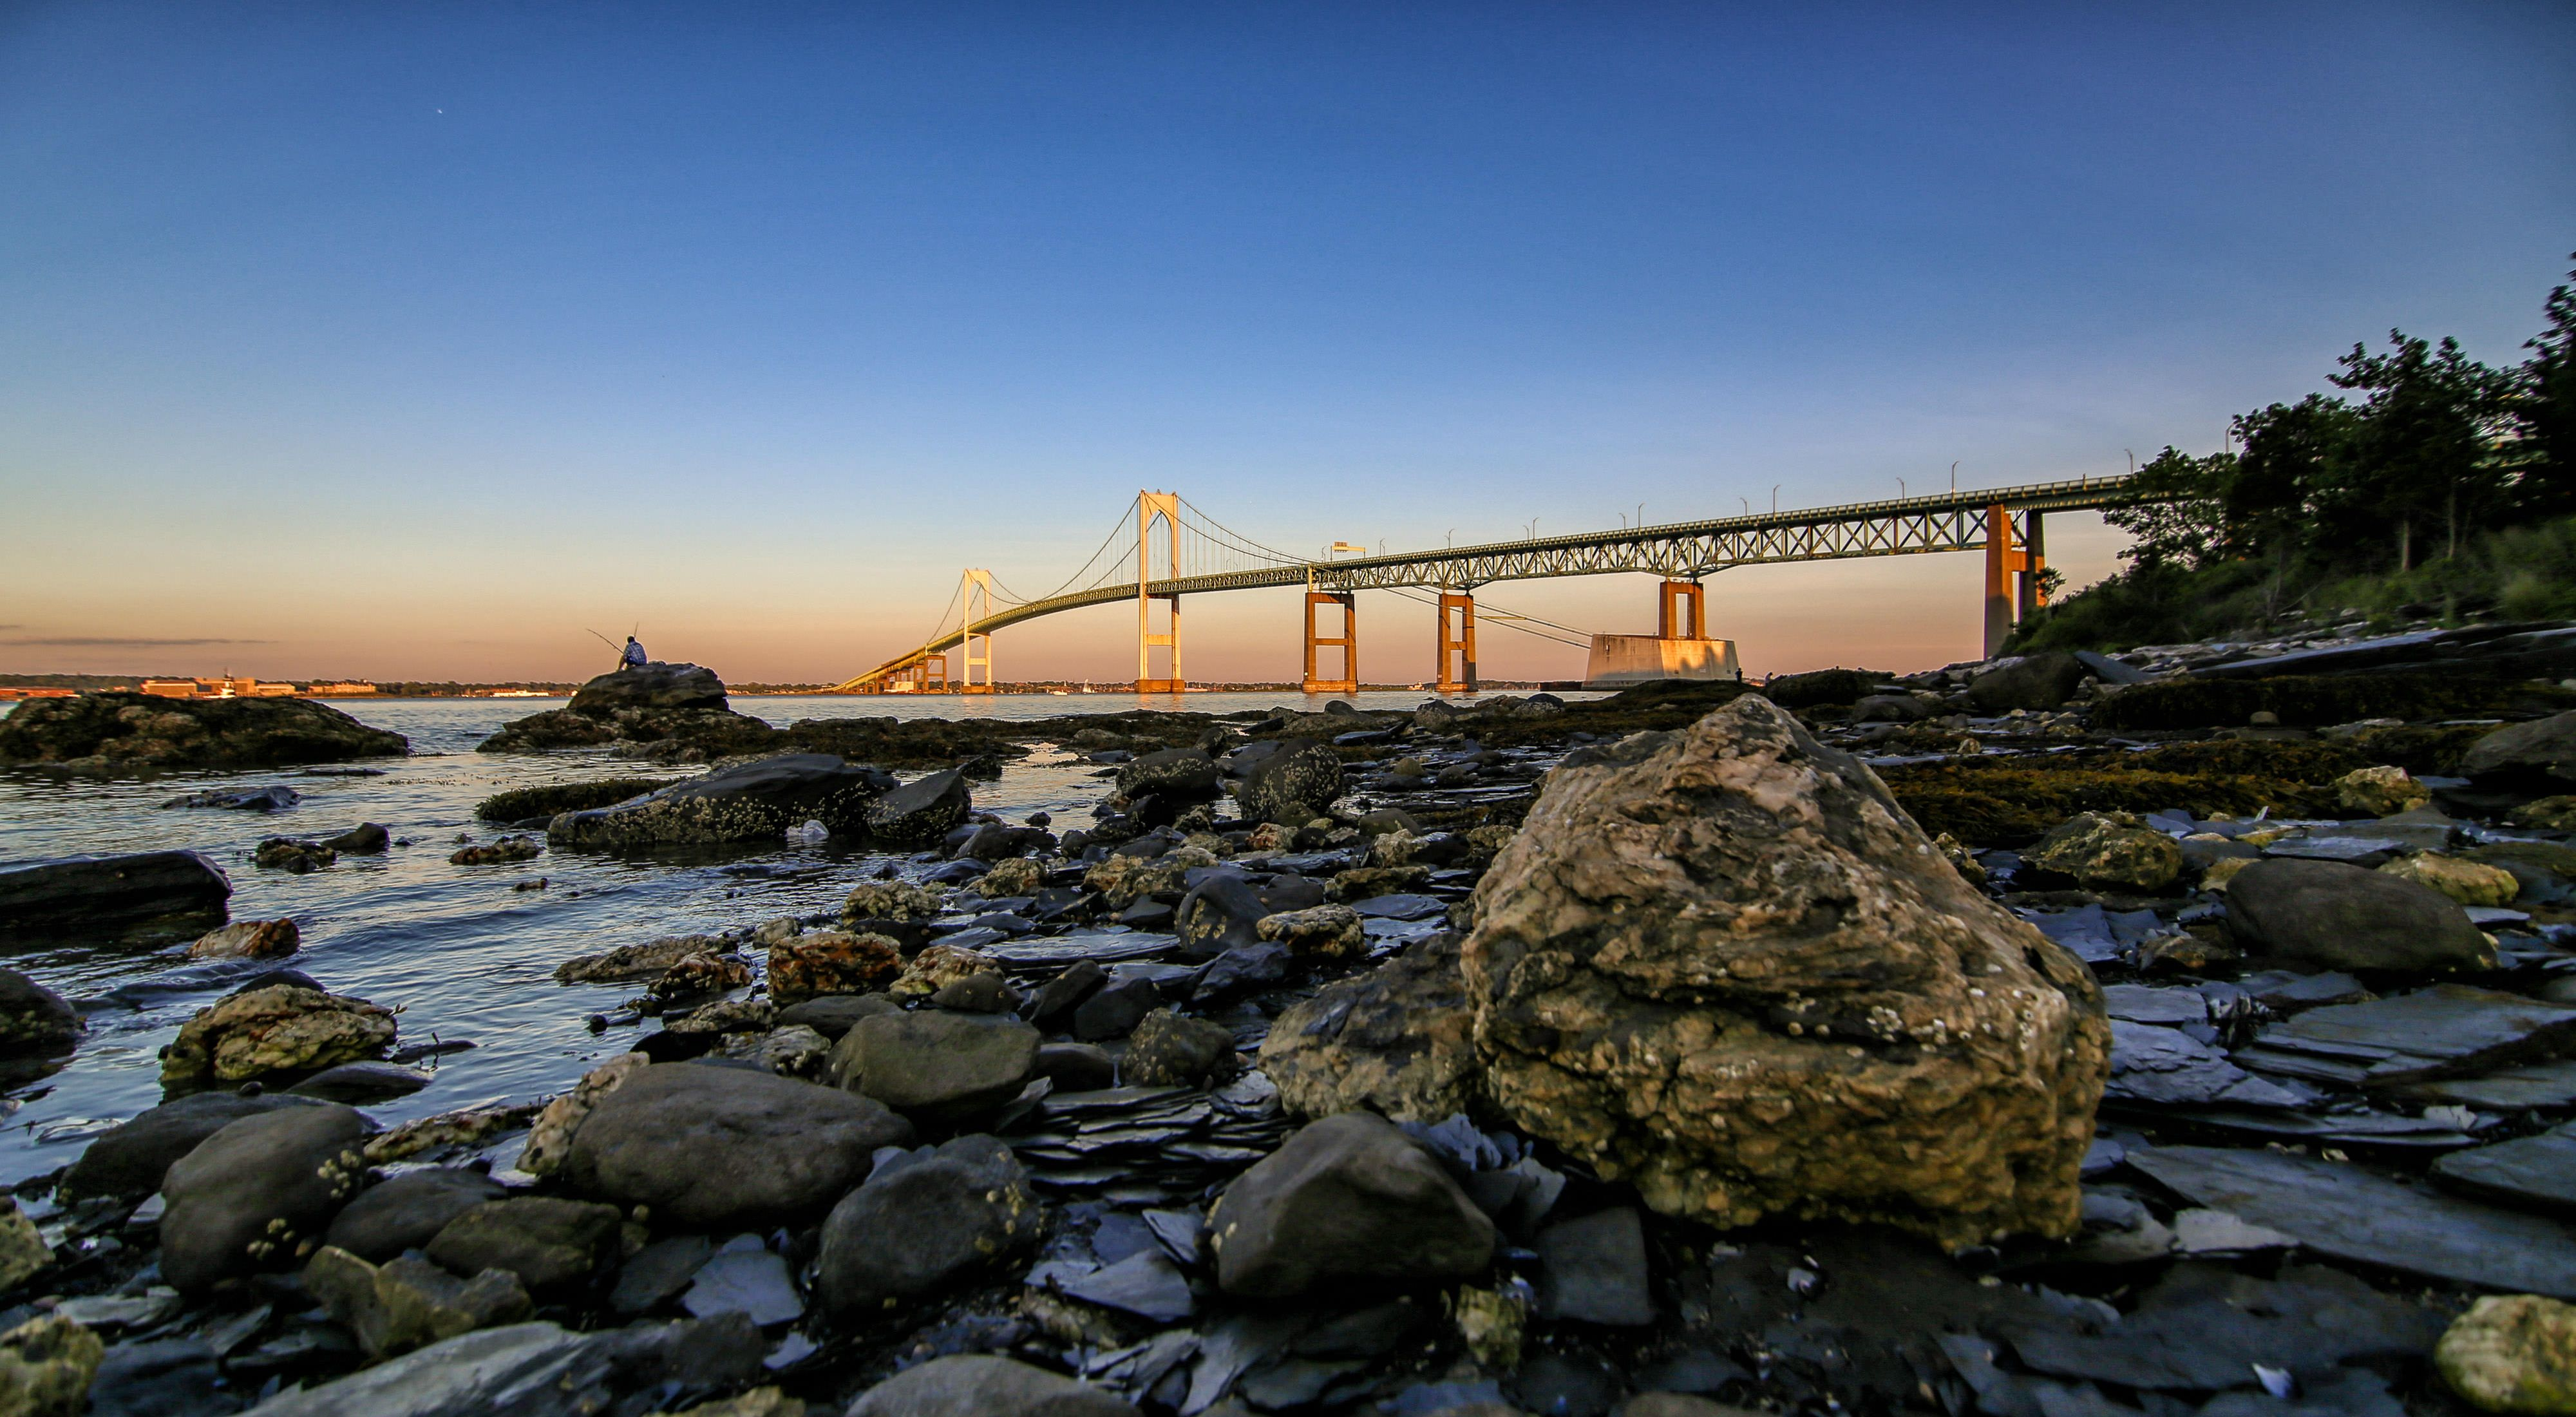 Photo of the bridge at Newport, Rhode Island, at sunrise, with rocks and tidal waters in foreground.